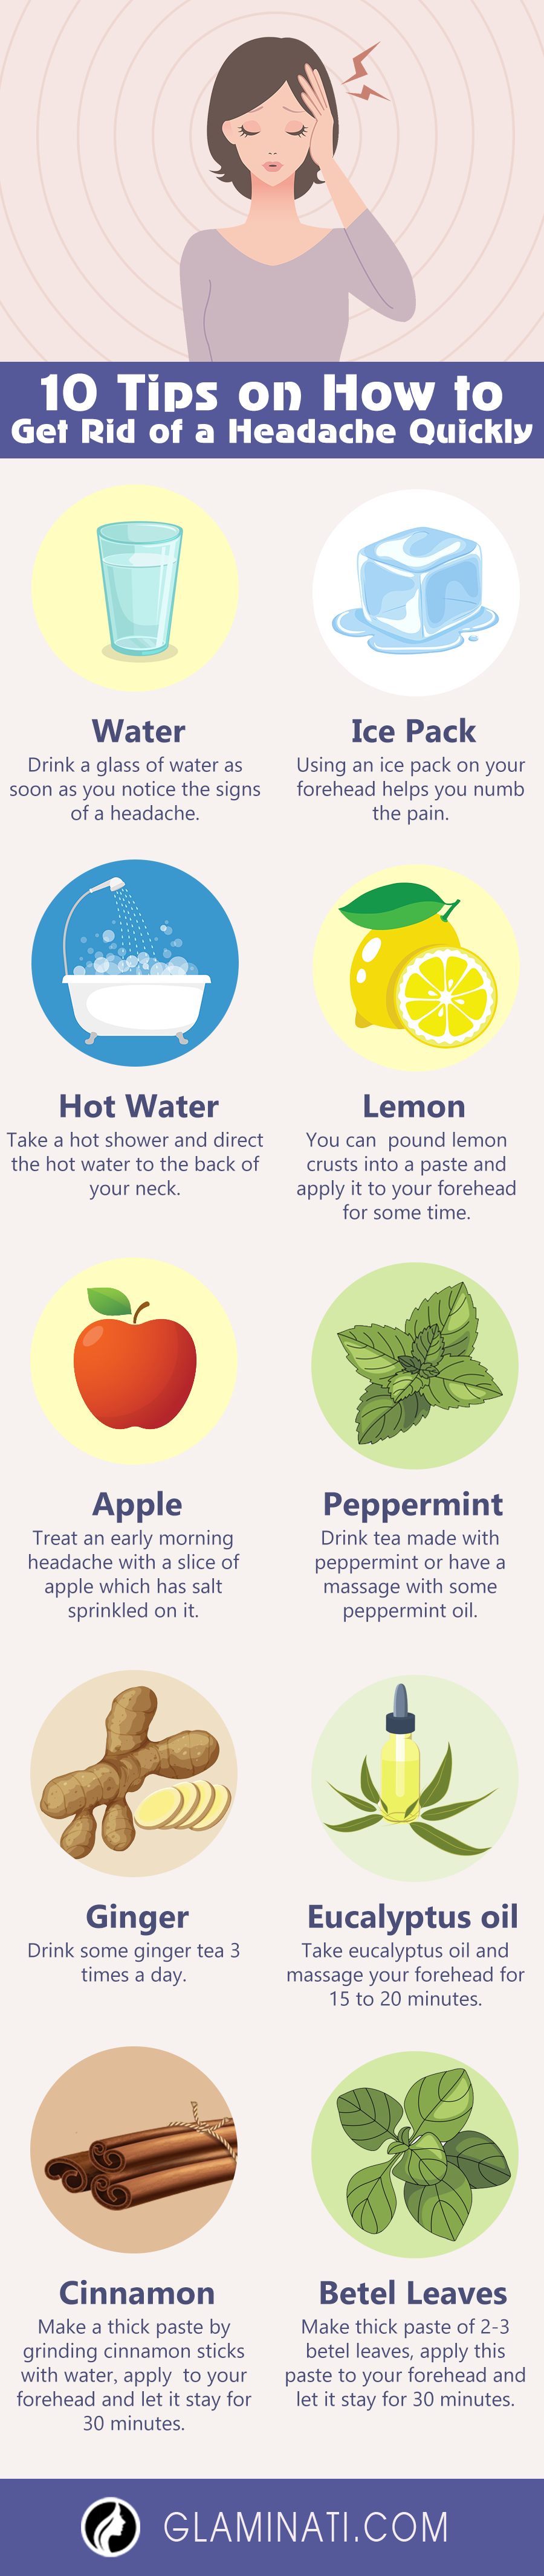 10 tips on how to get rid of a headache quickly - infographic